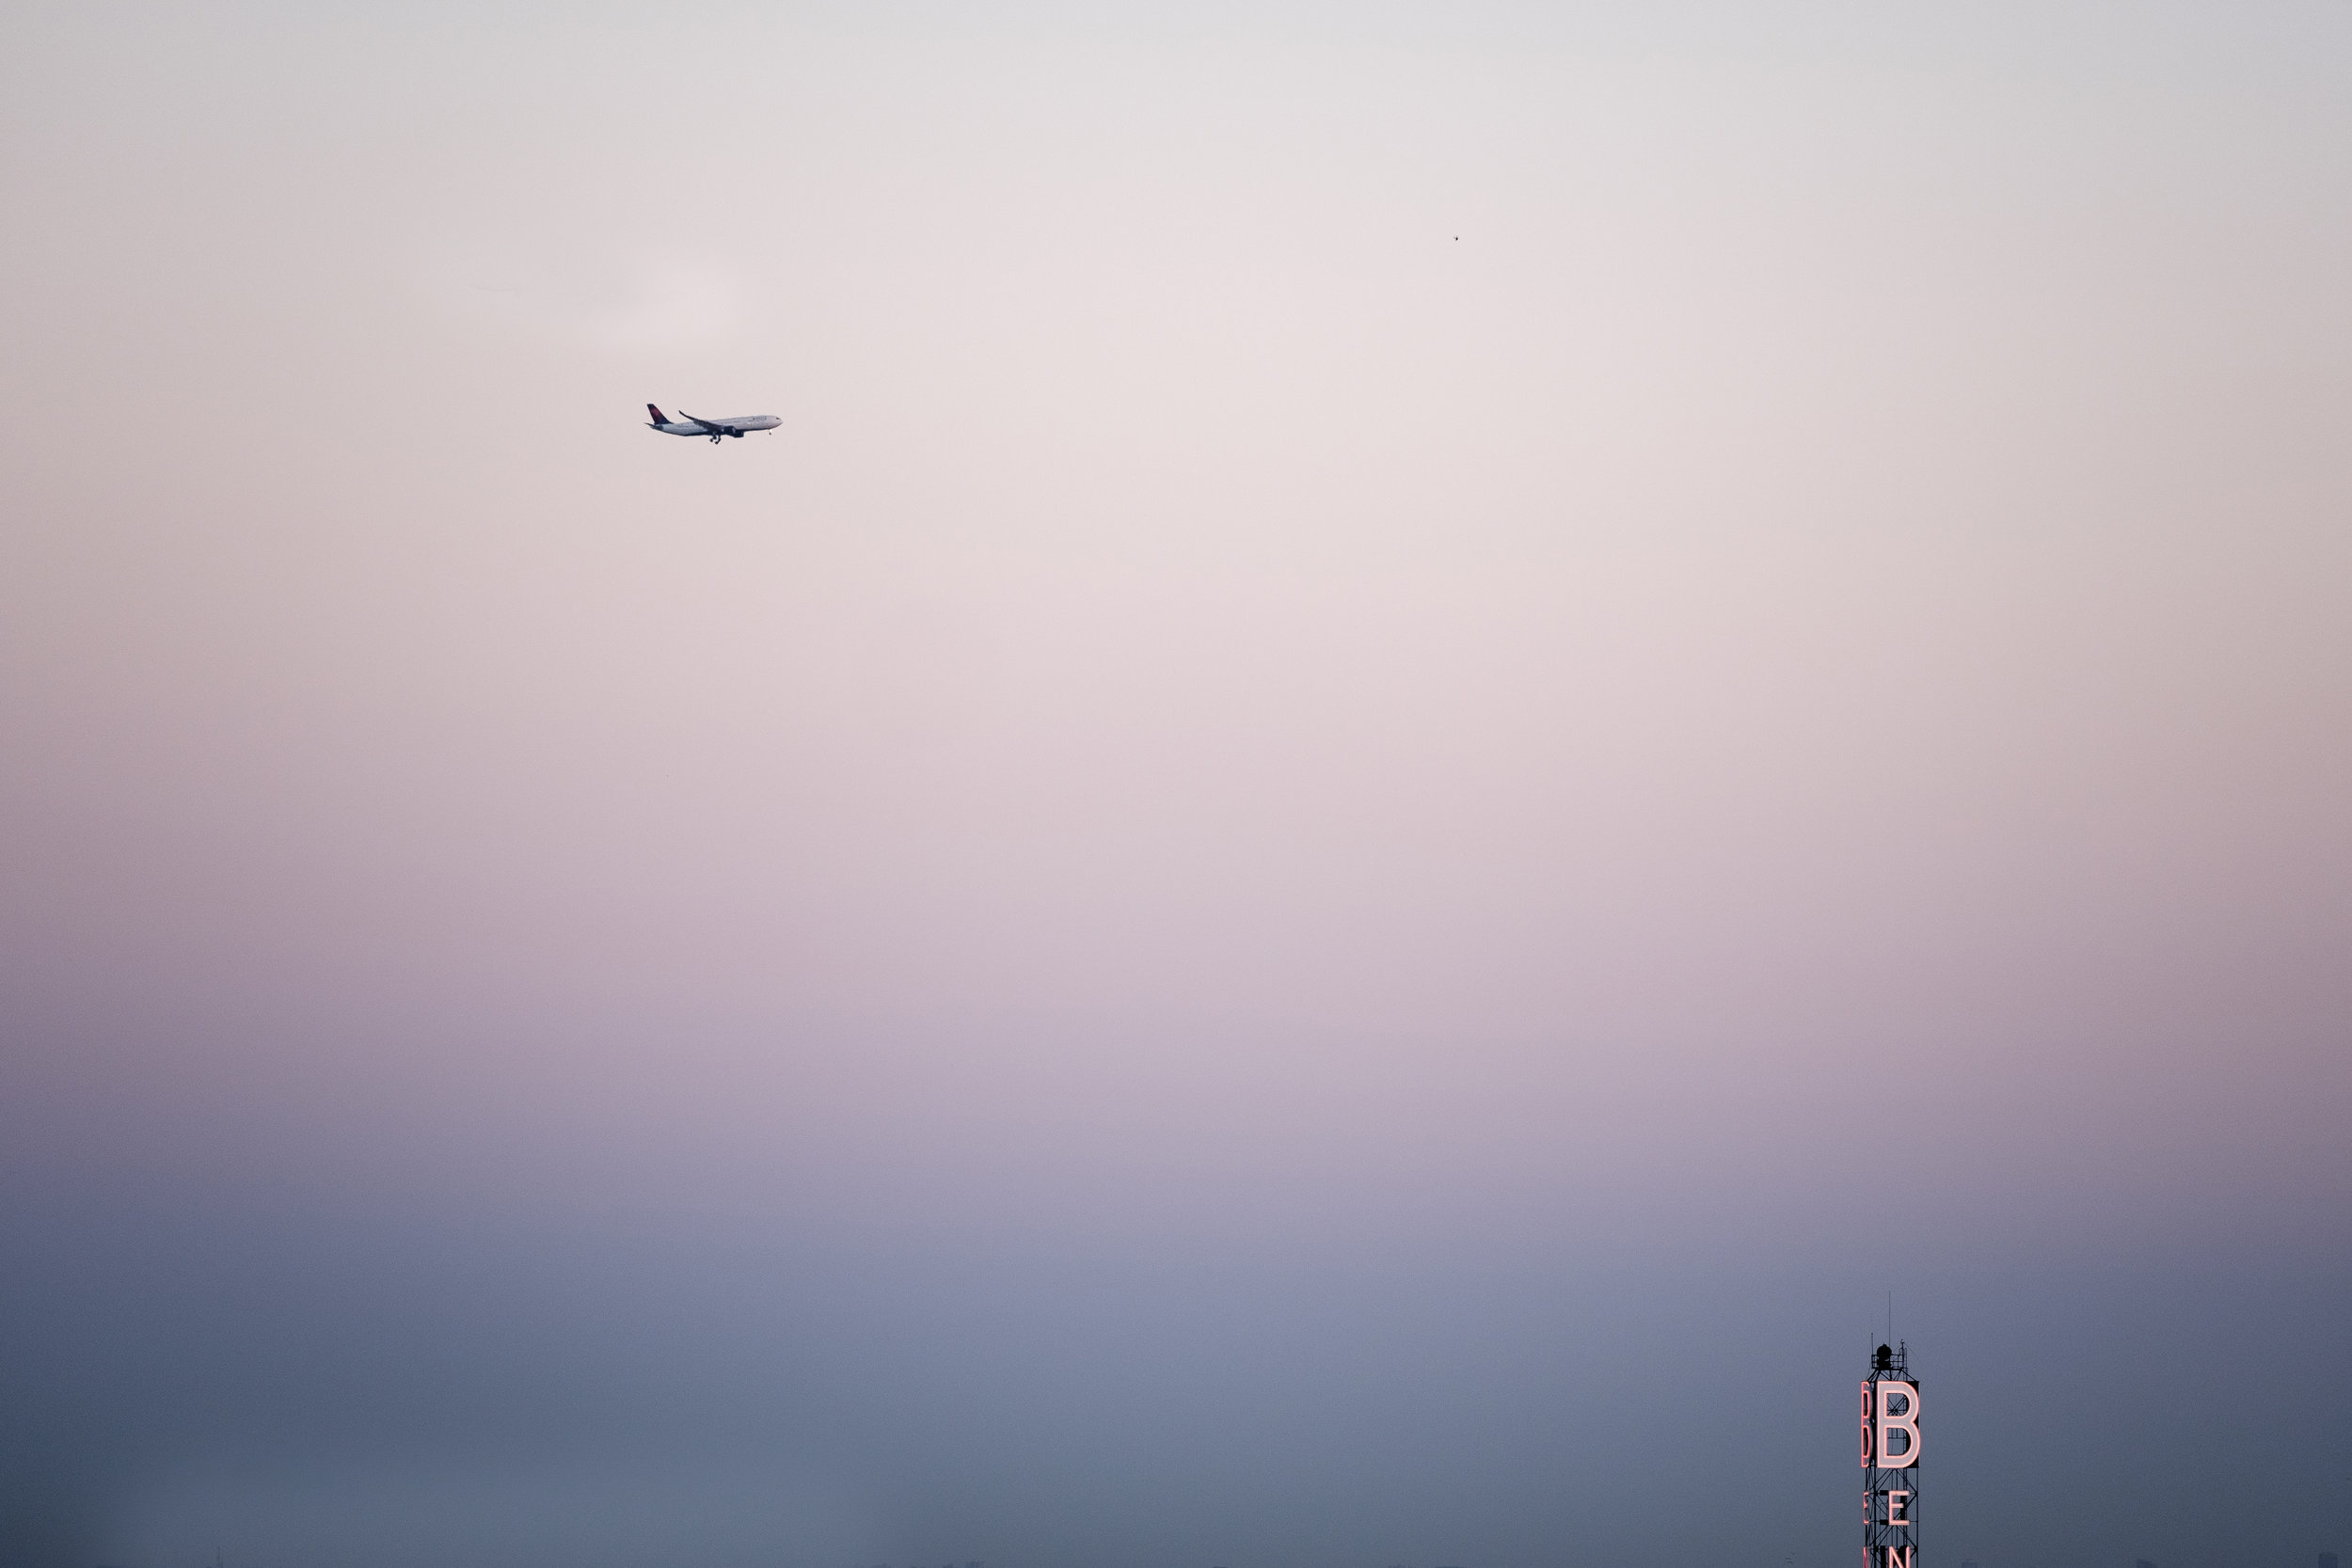 This, and the next two images, might ultimately become a series. Negative space, and the planes (on their approach to LAX) as composition elements. 140mm f/2.8, ISO 200, 1/120s